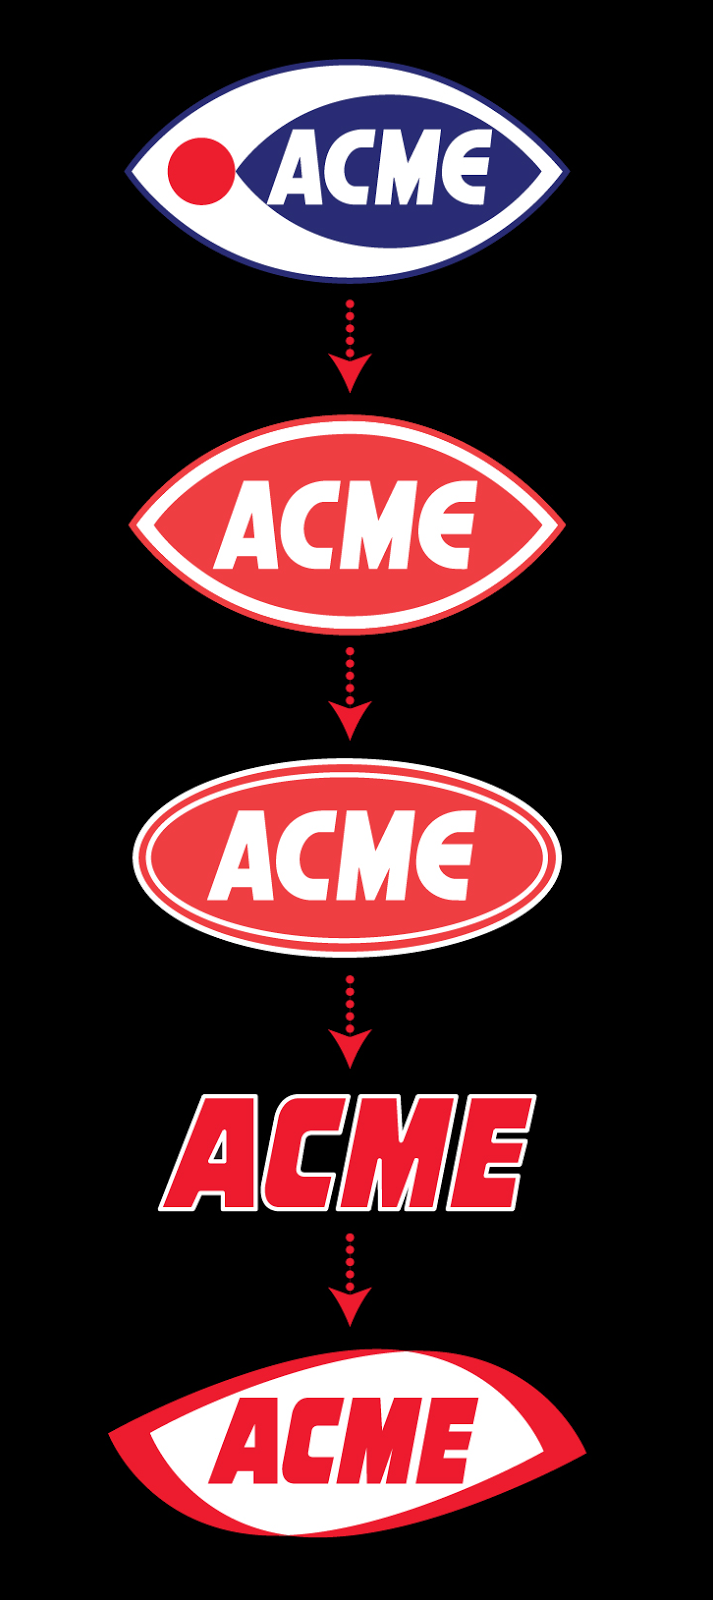 Acme dating